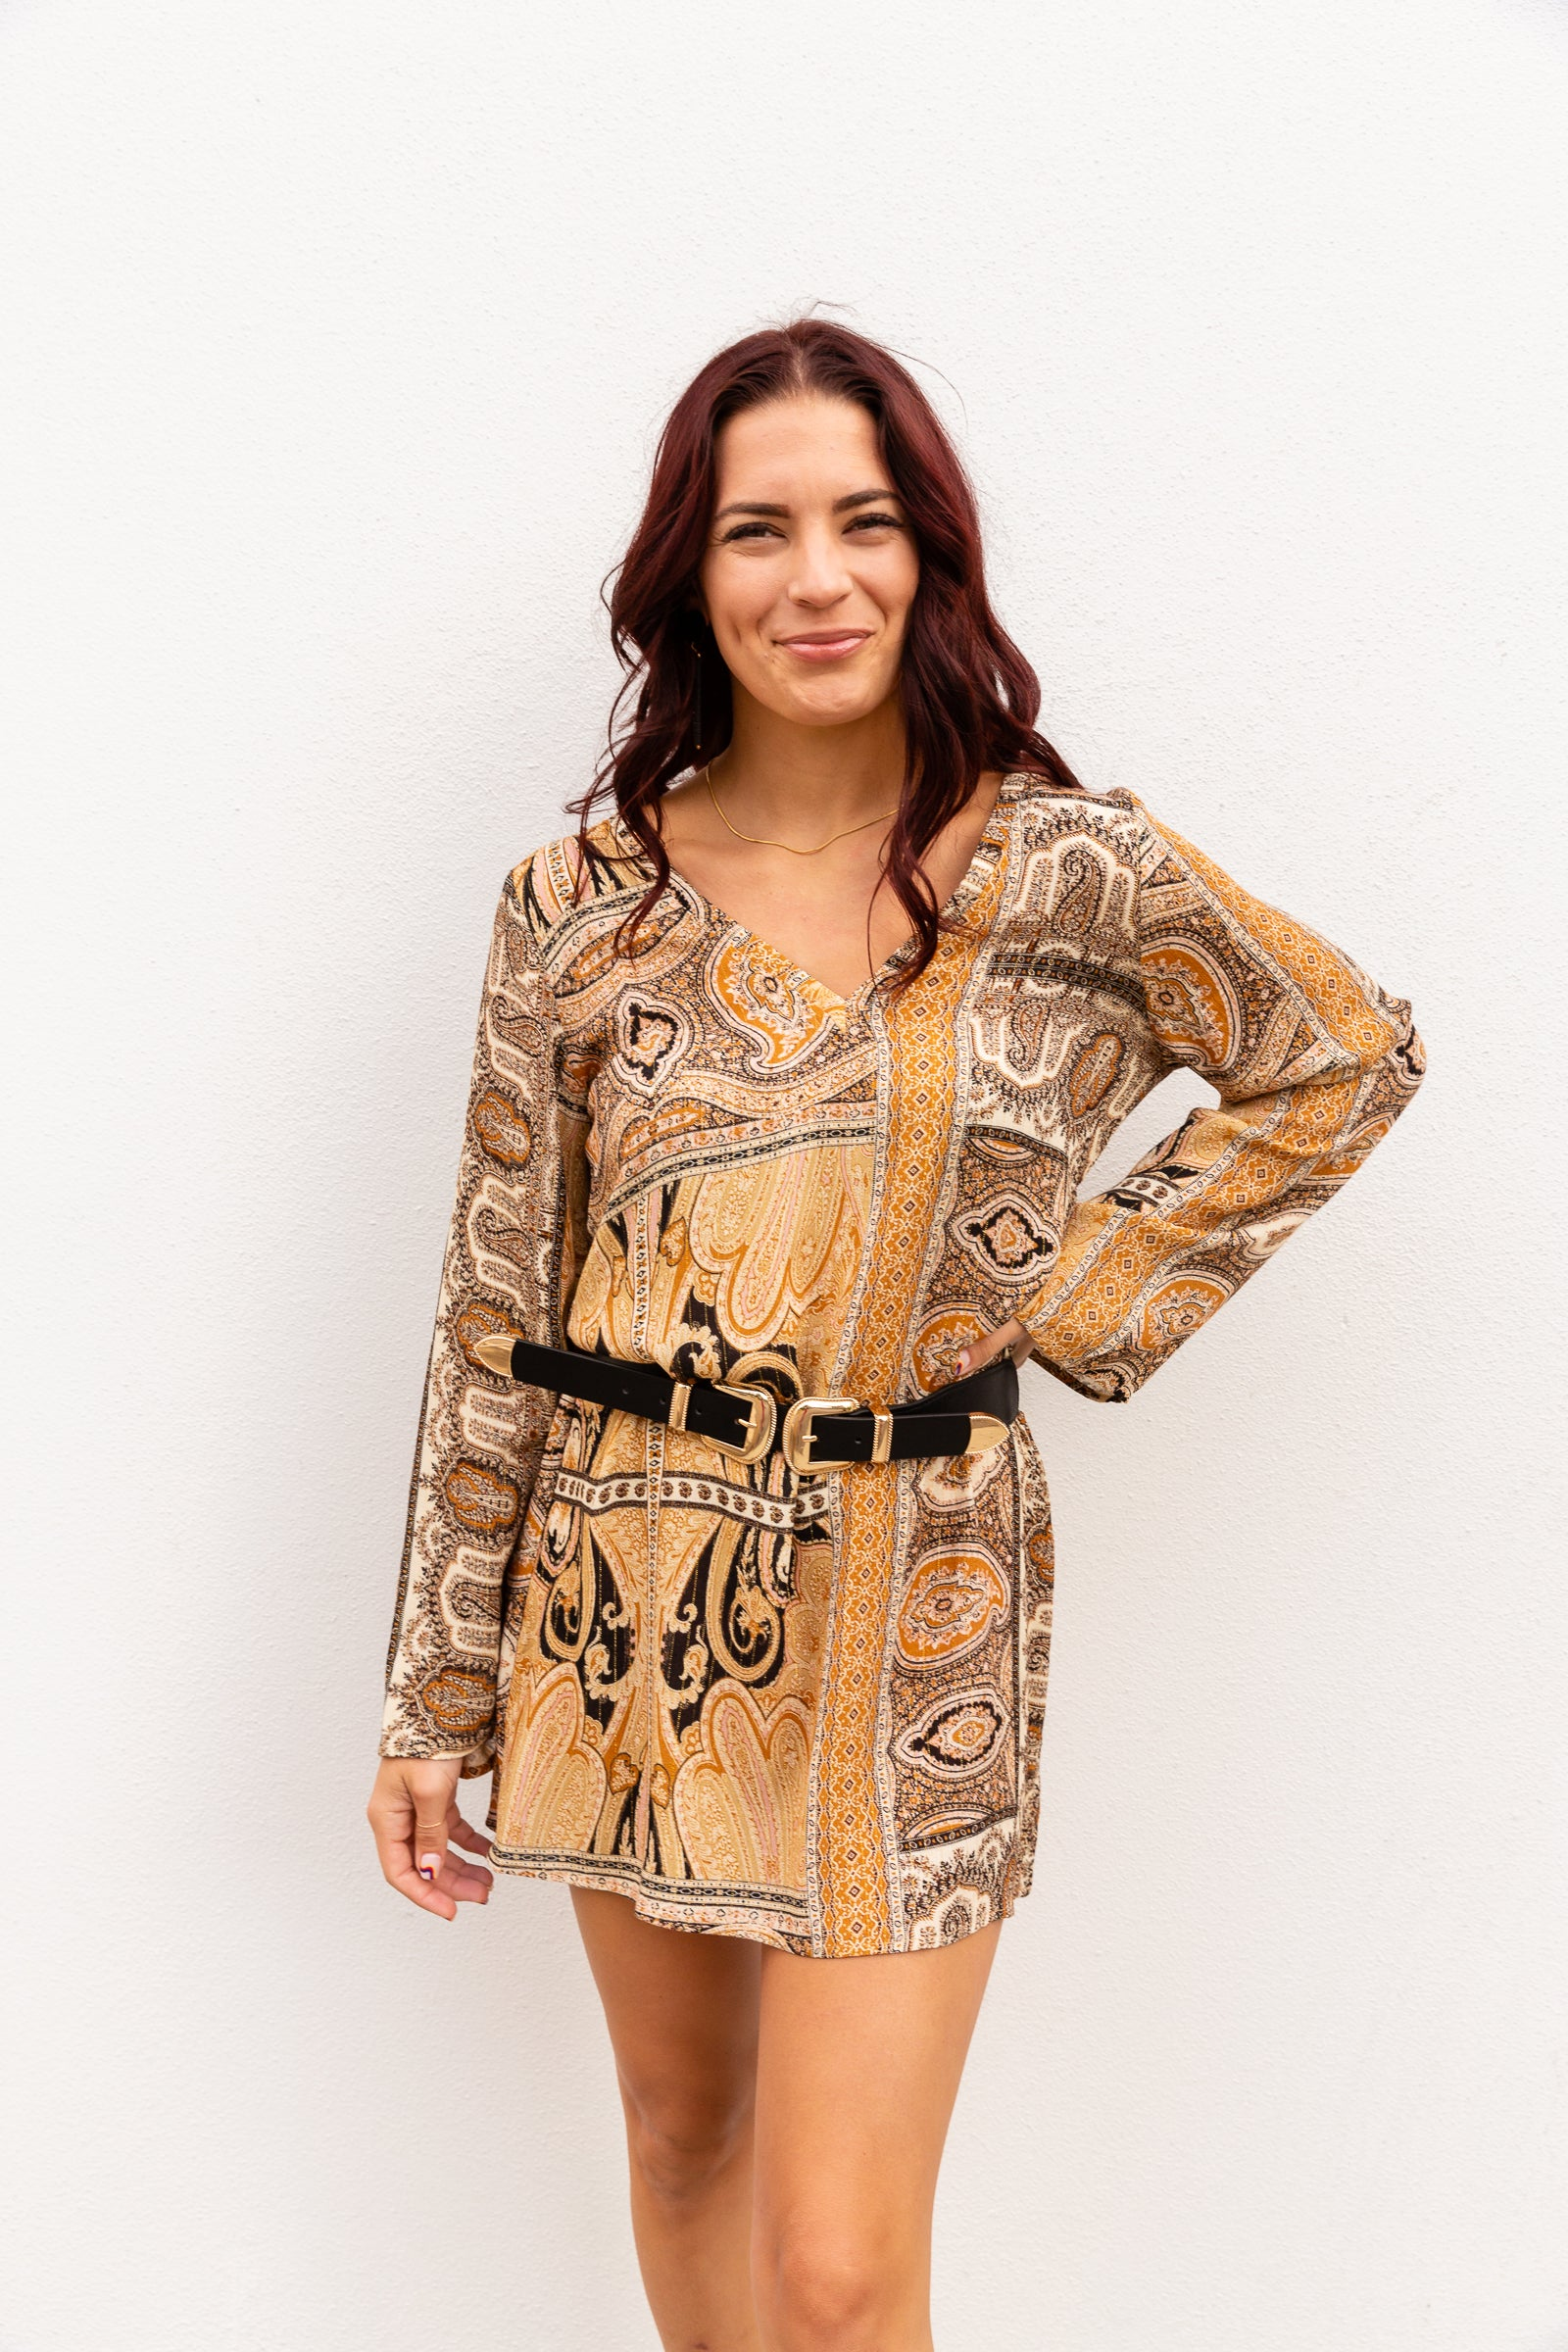 Gold threads go through the lightweight fabric of this paisley printed dress. It has long sleeves that attach to a v-neckline on a loose and comfortable shift silhouette.